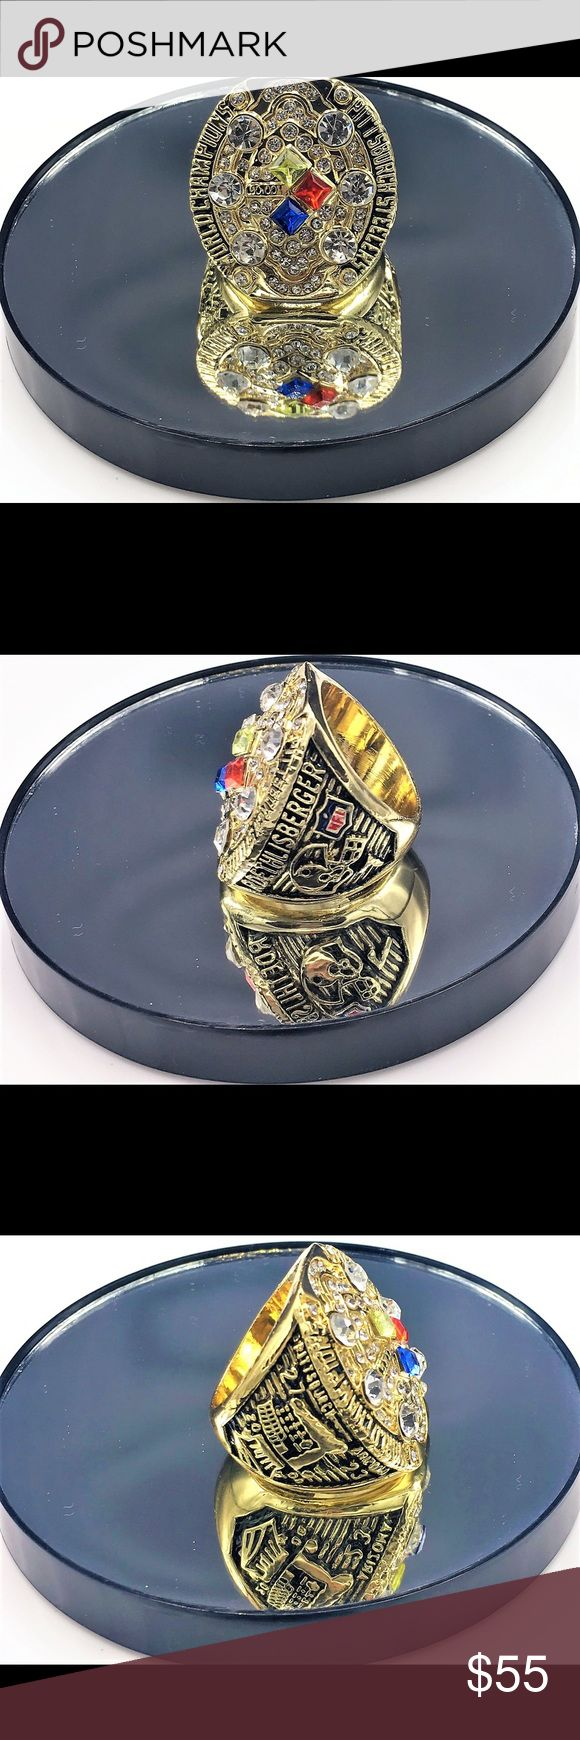 """Super Bowl 43 (XLIII) Replica Ring - Pitt Steelers Super Bowl 43 (XLIII) Replica Ring Pittsburgh Steelers 27 Arizona Cardinals 23 Feb. 1, 2009  """"Holmes Toe-drag to seal Title""""  Size 11 but meant for Collectible Souvenir. Perfect Gift for any true Pittsburgh Steelers Fan. Accessories Jewelry"""